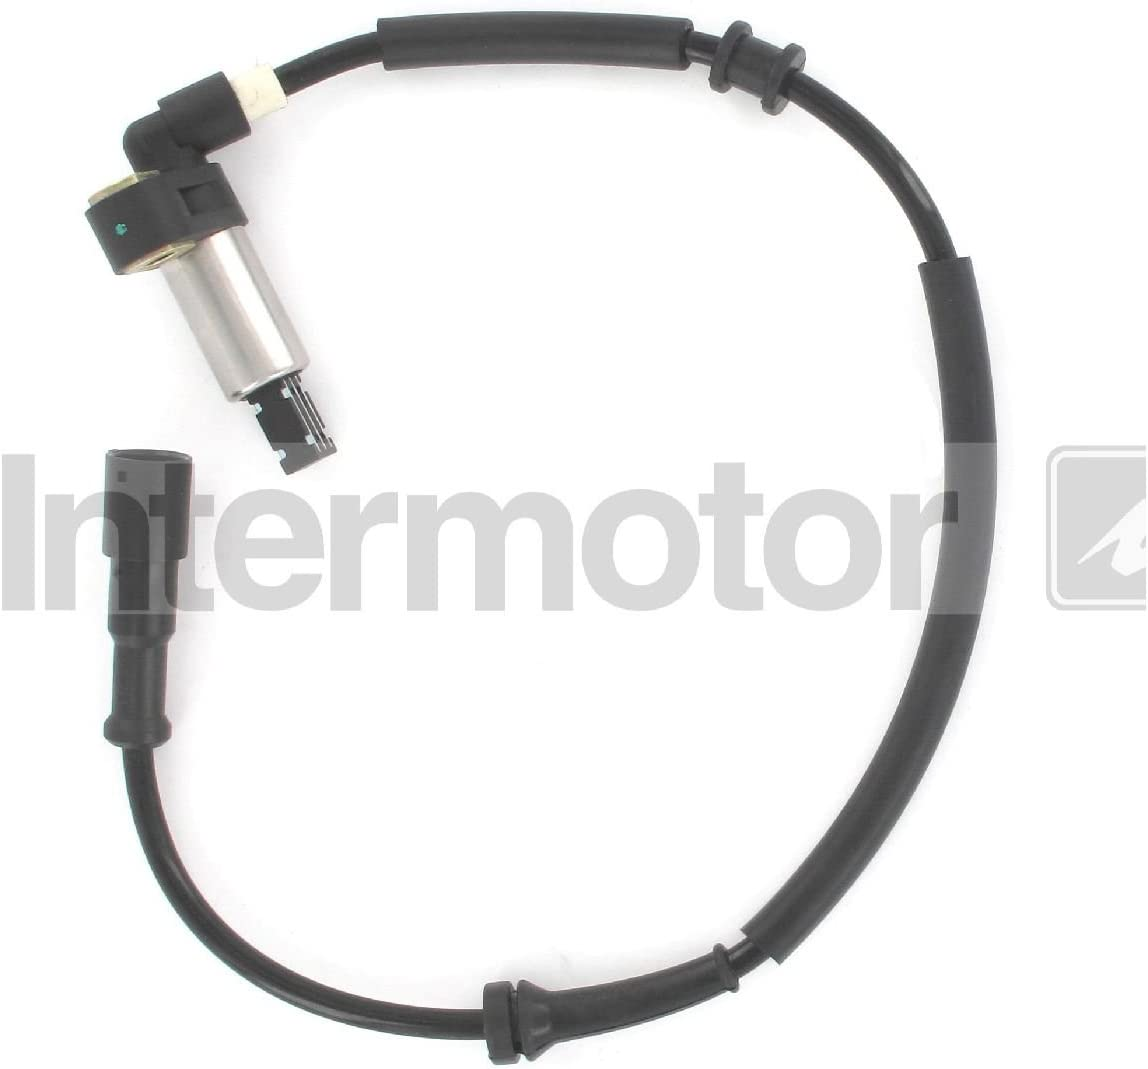 Intermotor 60682 OFFicial 2021 spring and summer new mail order ABS Sensor